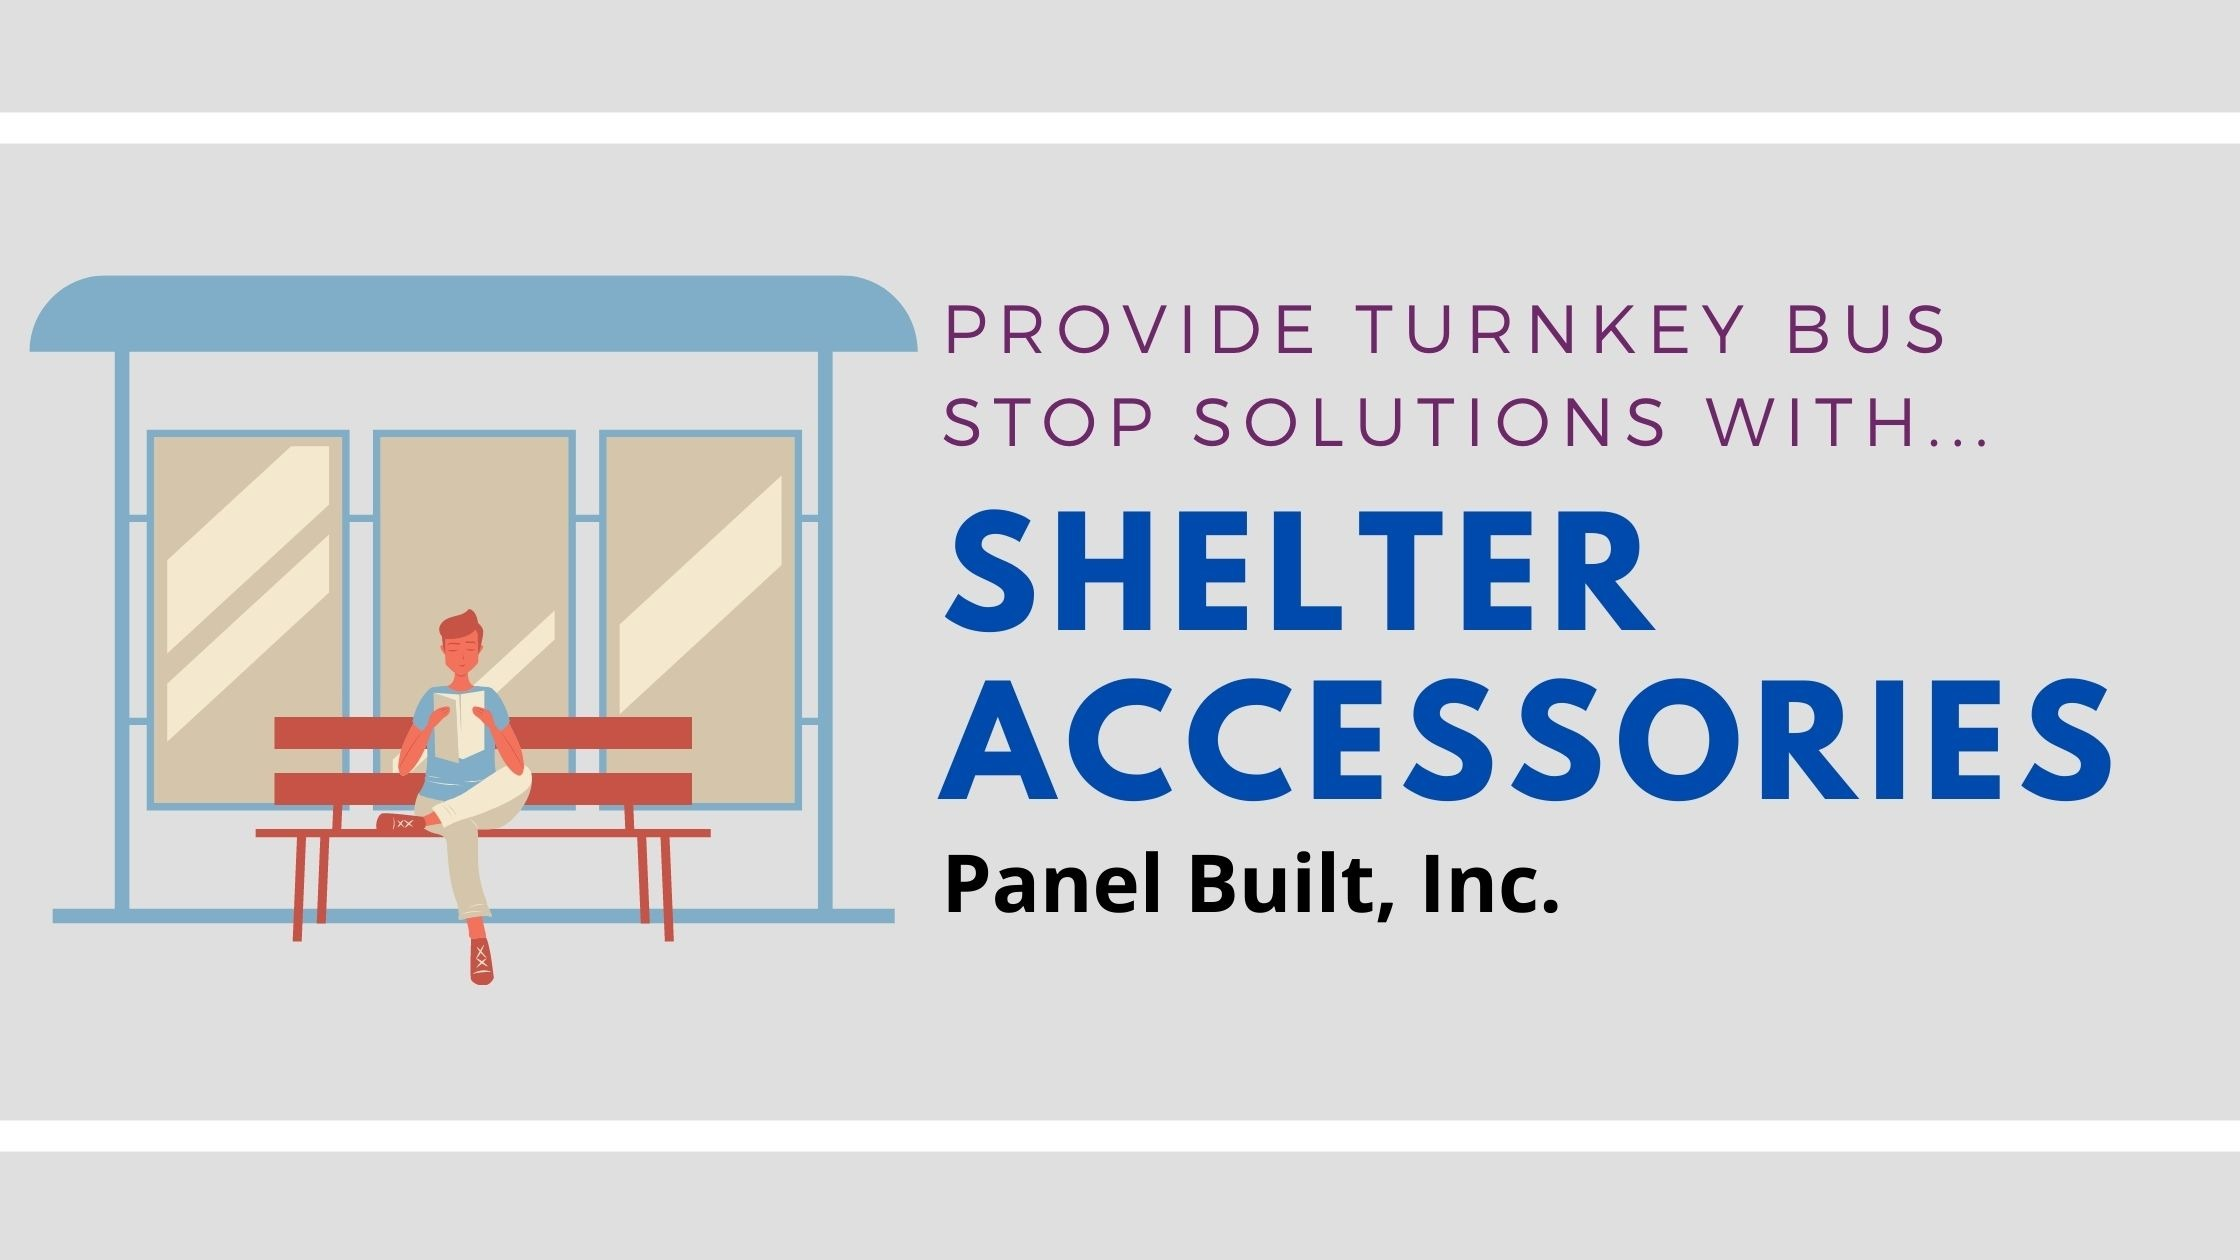 Shelter Accessories